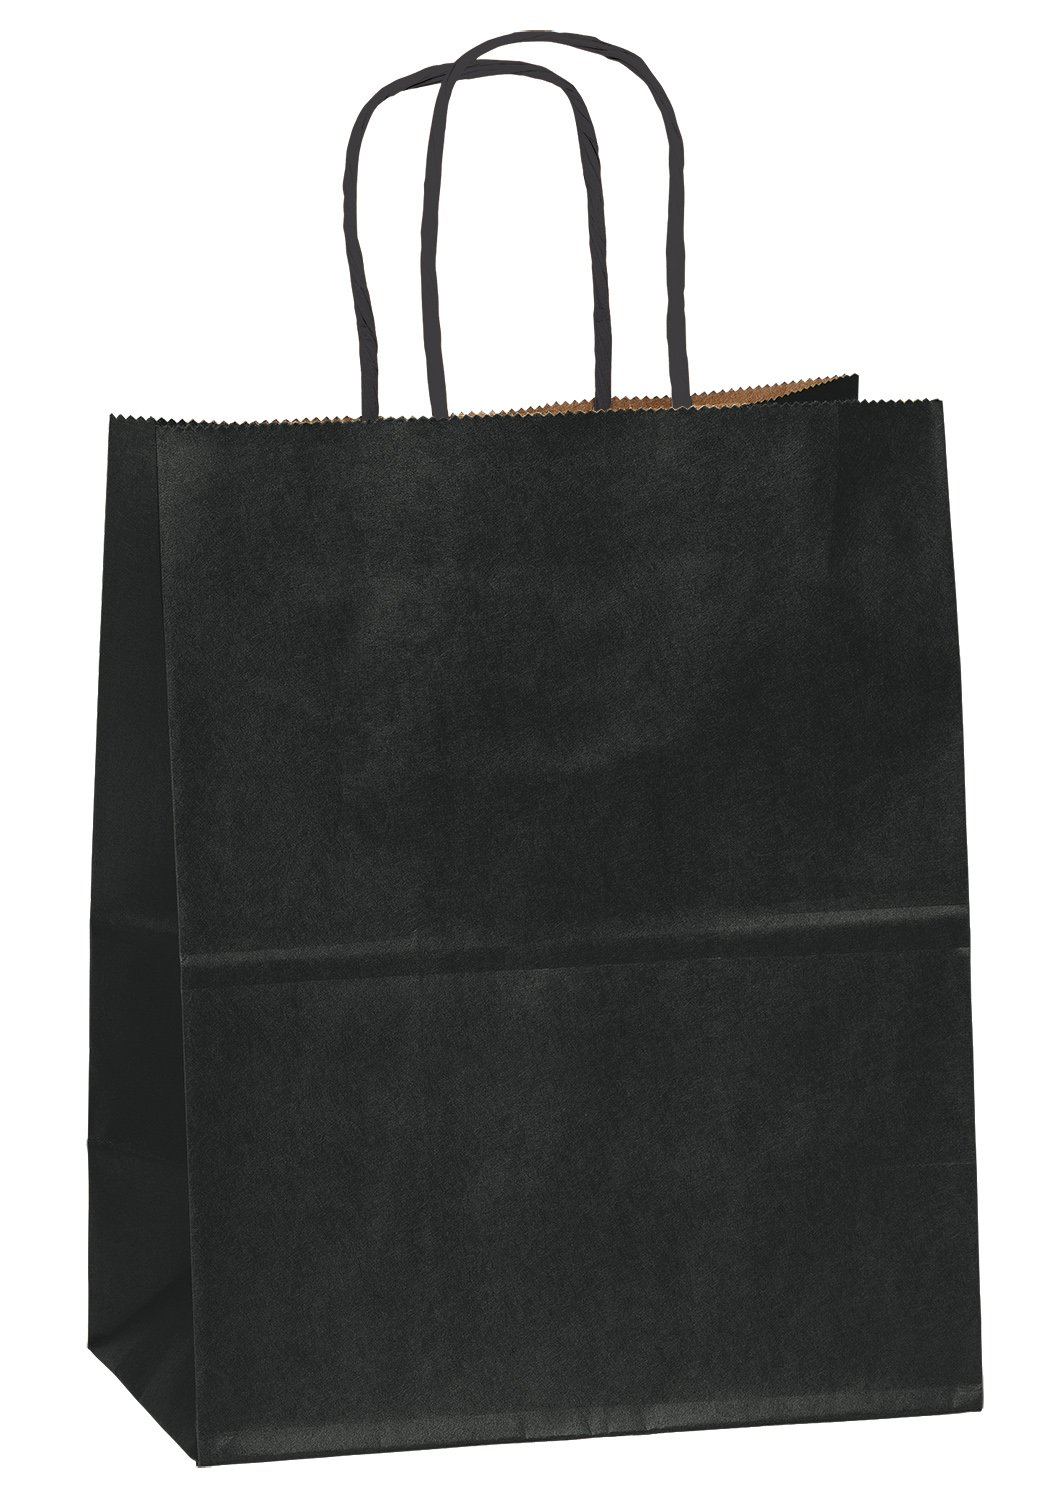 8''x4.75''x10'' - 50 Pcs - Black Kraft Paper Bags, Shopping, Mechandise, Party, Gift Bags by Flexicore Packaging